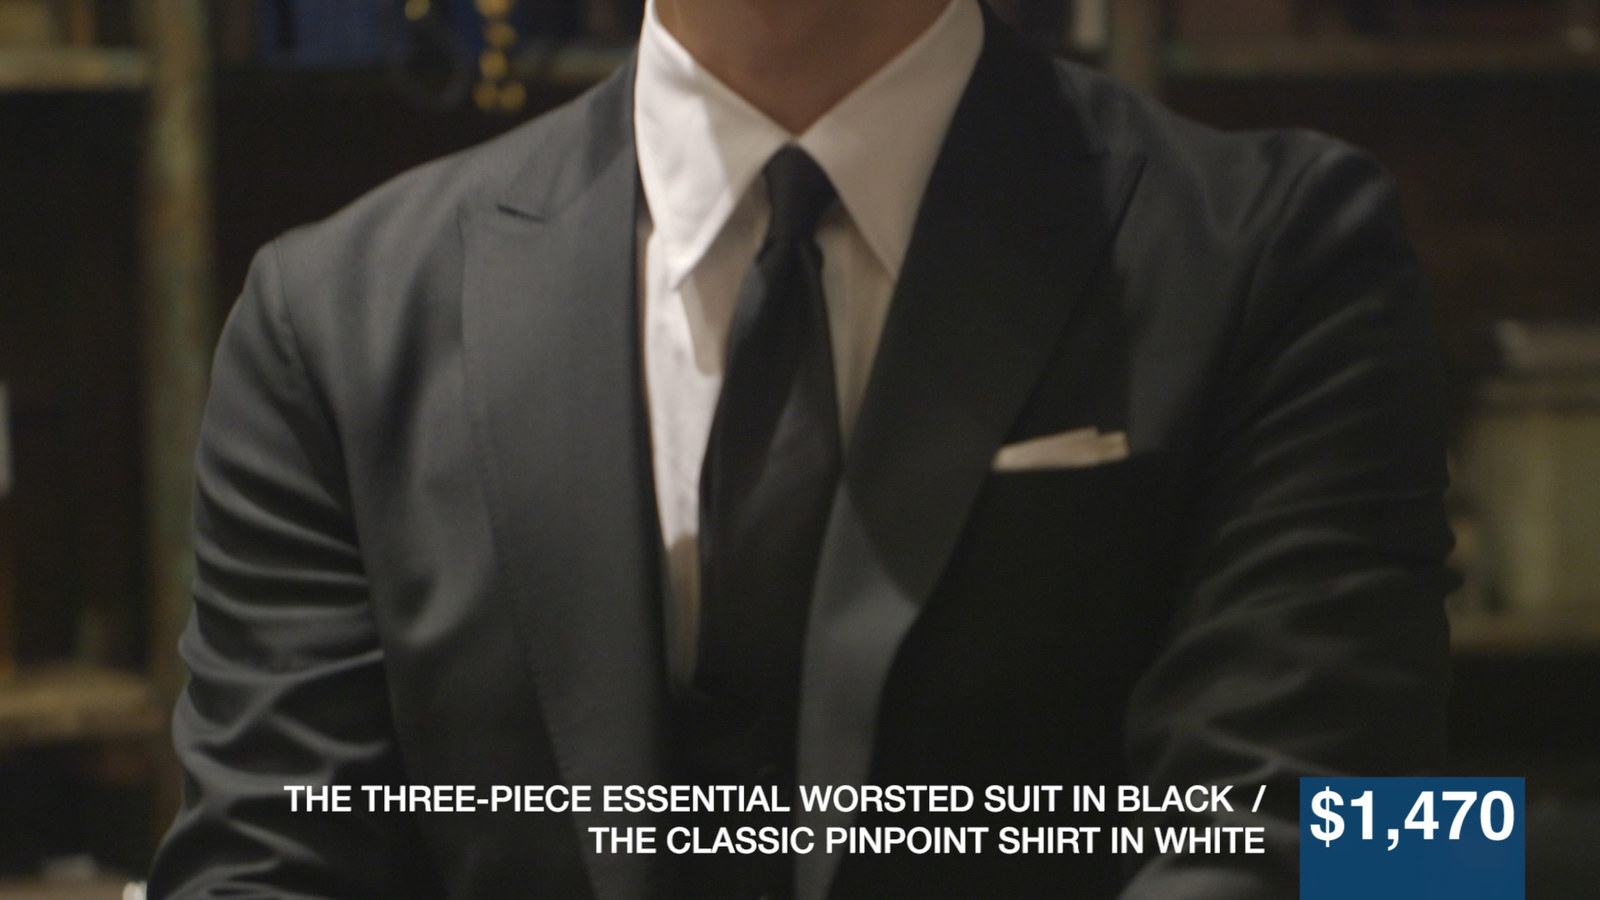 We Tried On Suits Ranging From $399 To $7,900 To See Which